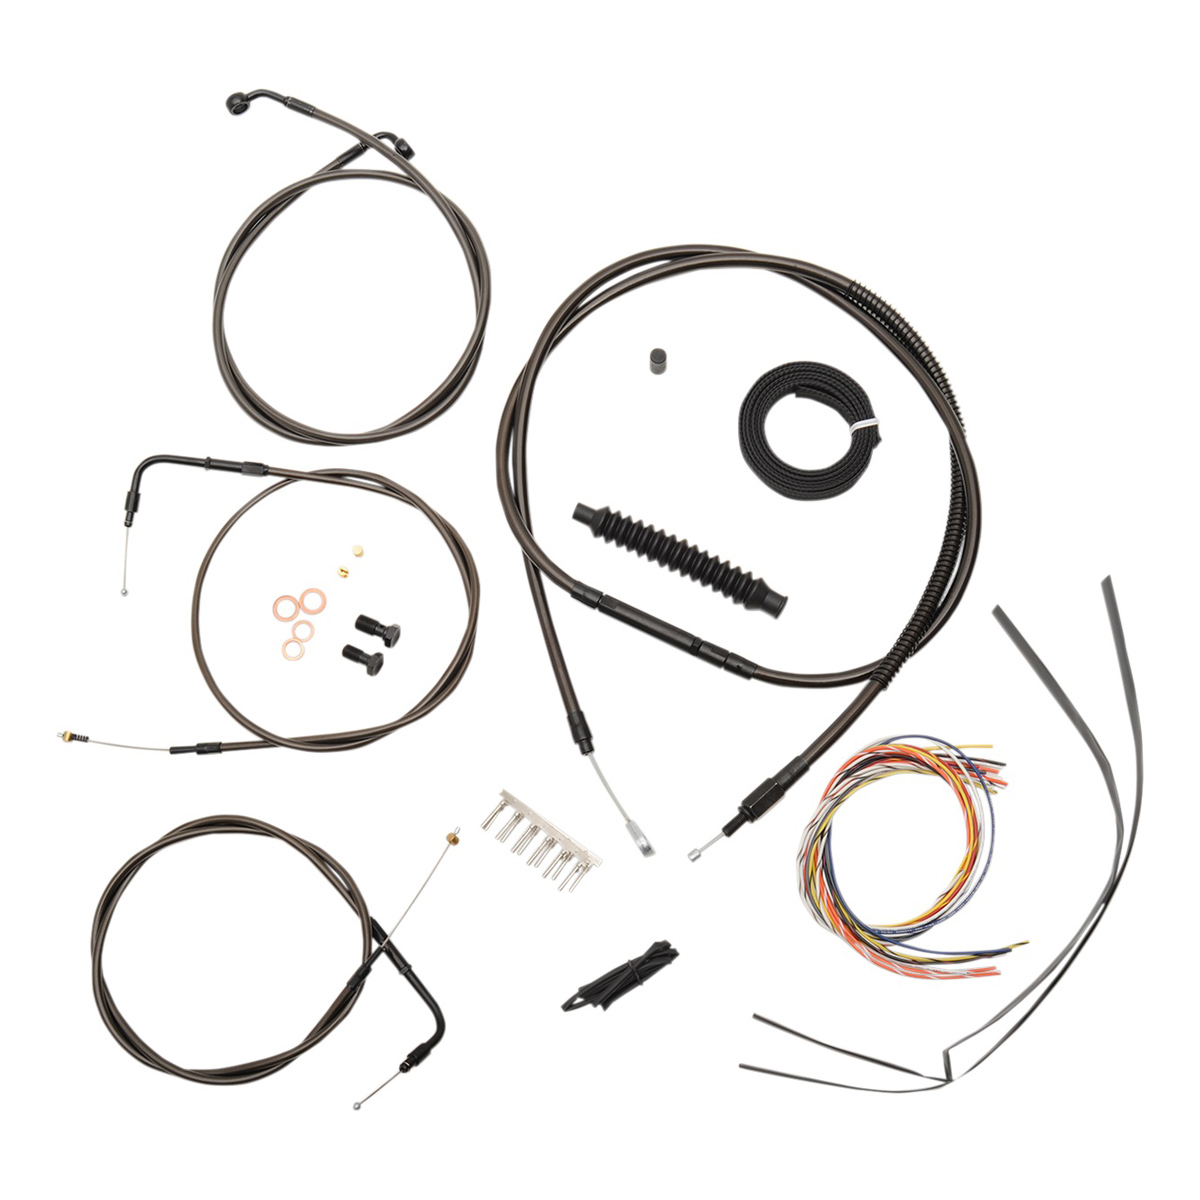 LA Choppers Midnight Complete Cable/Line/Wiring Handlebar Kit for 15″-17″ Bars